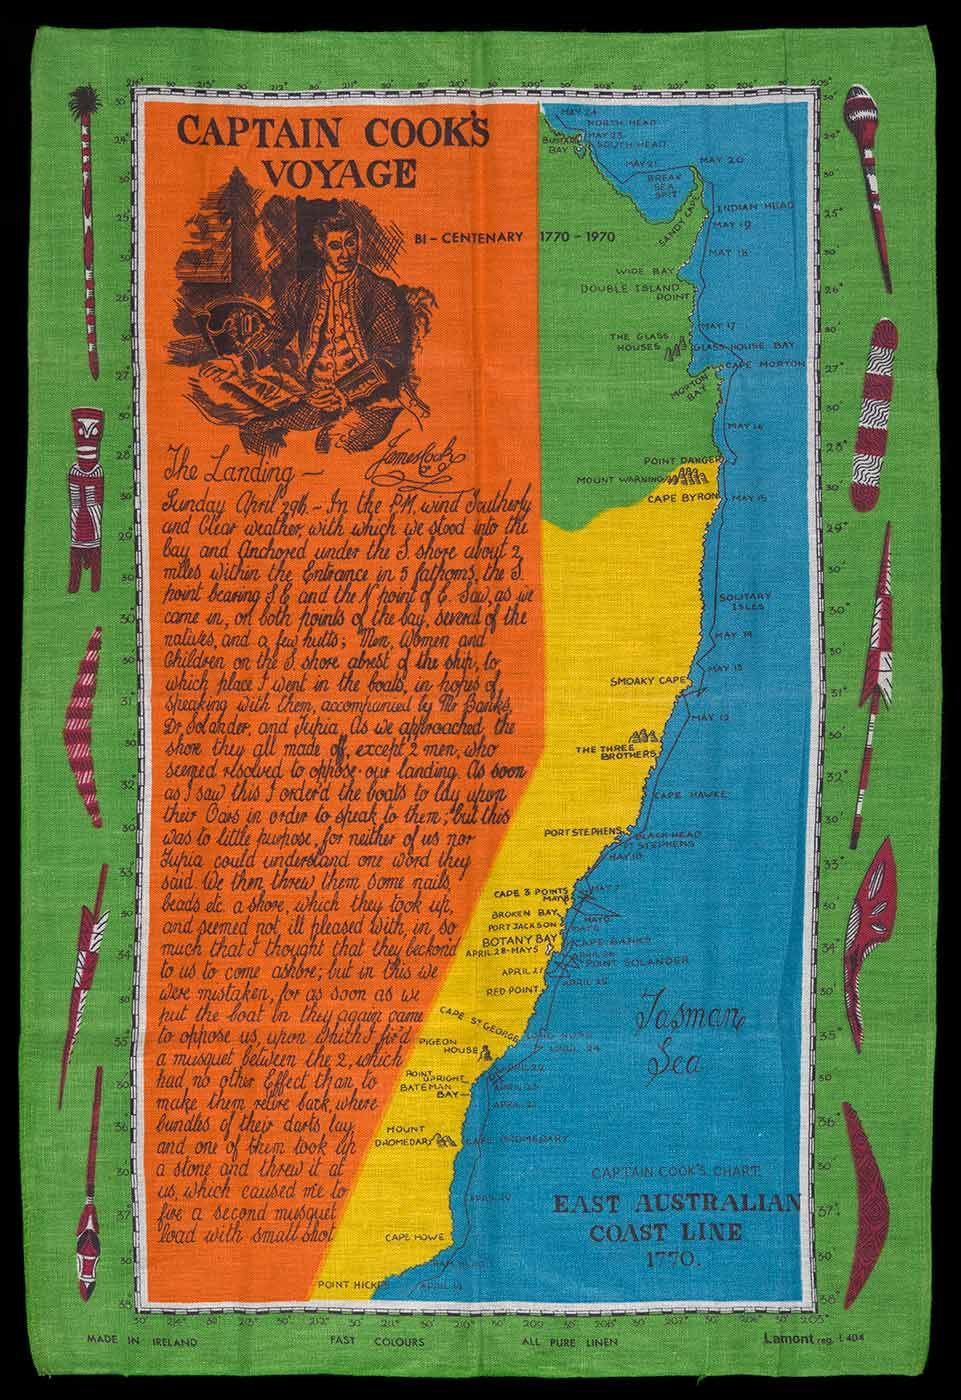 A tea towel featuring a map of the coast of Australian from Point Hicks to Sandy Cape. The tea towl has text from Cooks journal and a heading that reads 'CAPTAIN COOKS / VOYAGE' and 'BI-CENTENARY 1870-1970'. - click to view larger image